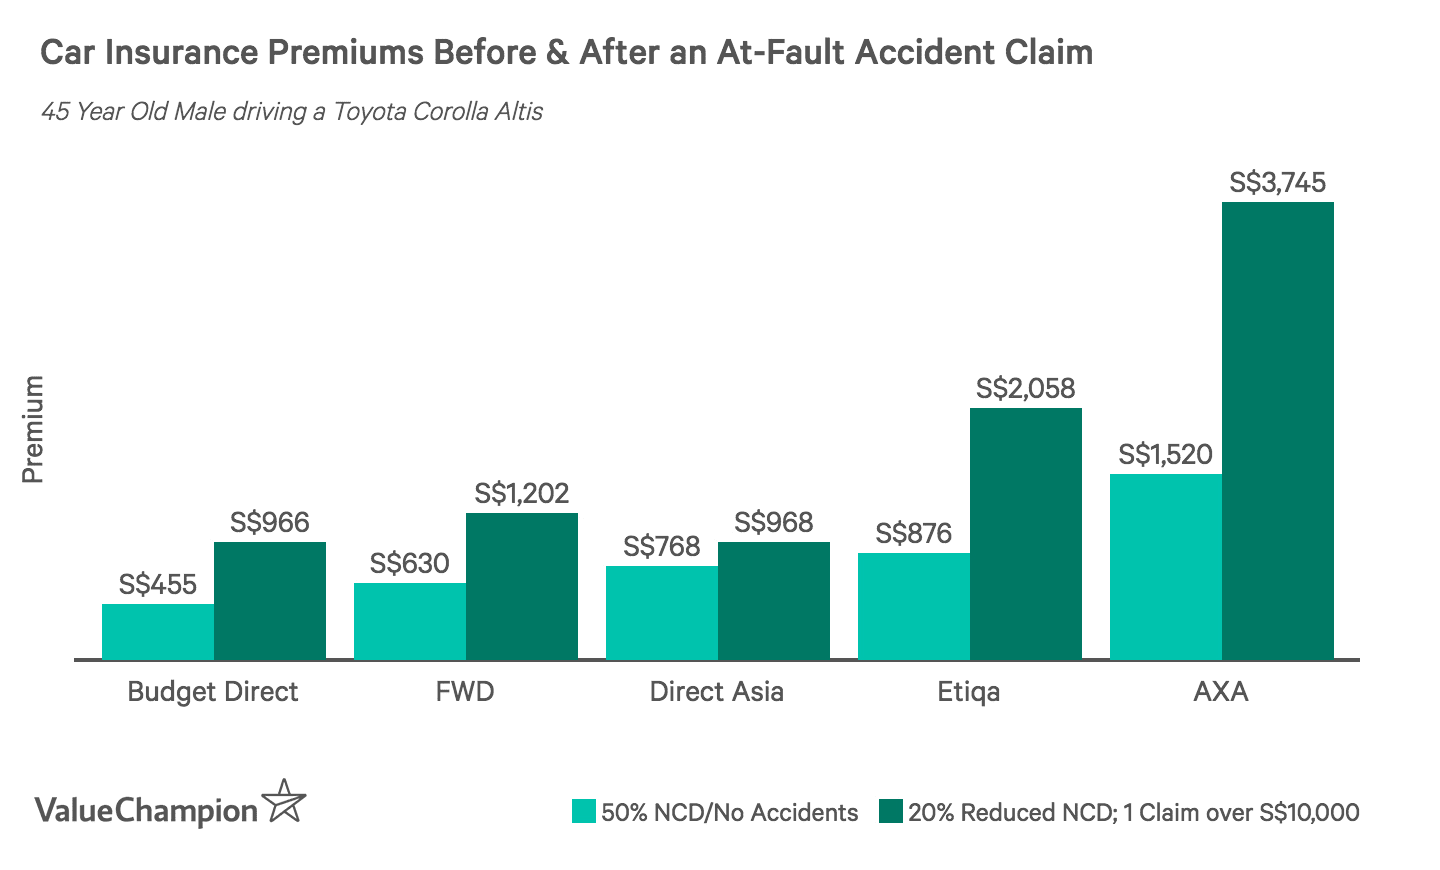 This graph shows the price increase of car insurance premiums in Singapore after a driver has claimed for an at-fault accident